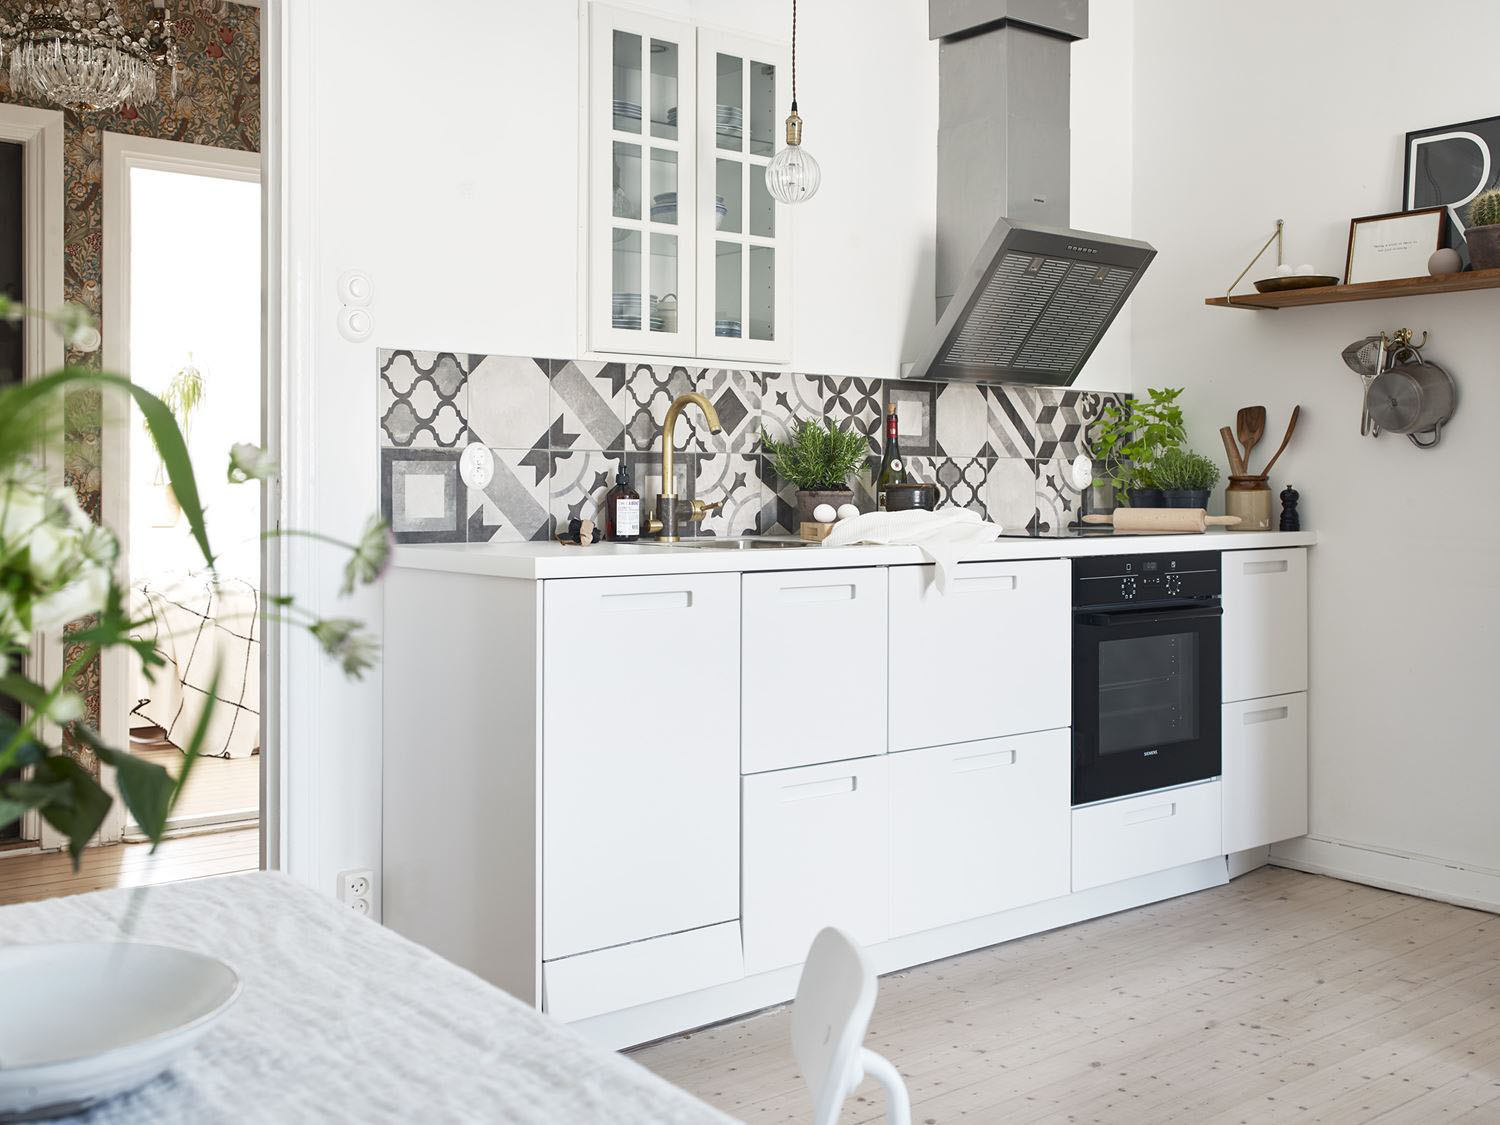 Beautifully Refurbished Small Apartment With Open Kitchen In The Living Room Idesignarch Interior Design Architecture Decorating Emagazine